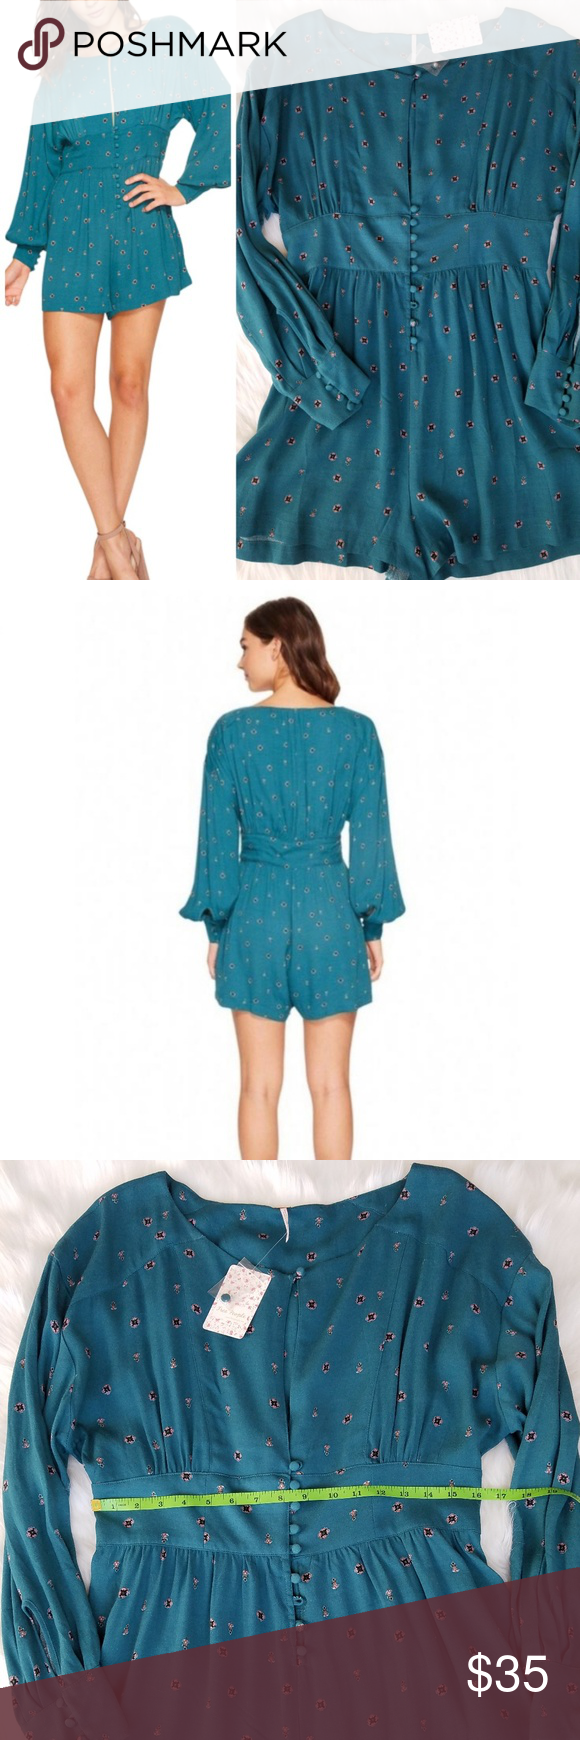 23e45bc1000 Free People NWT Love Grows Long Sleeve L Romper Free People OB652803 Green  Combo Love Grows